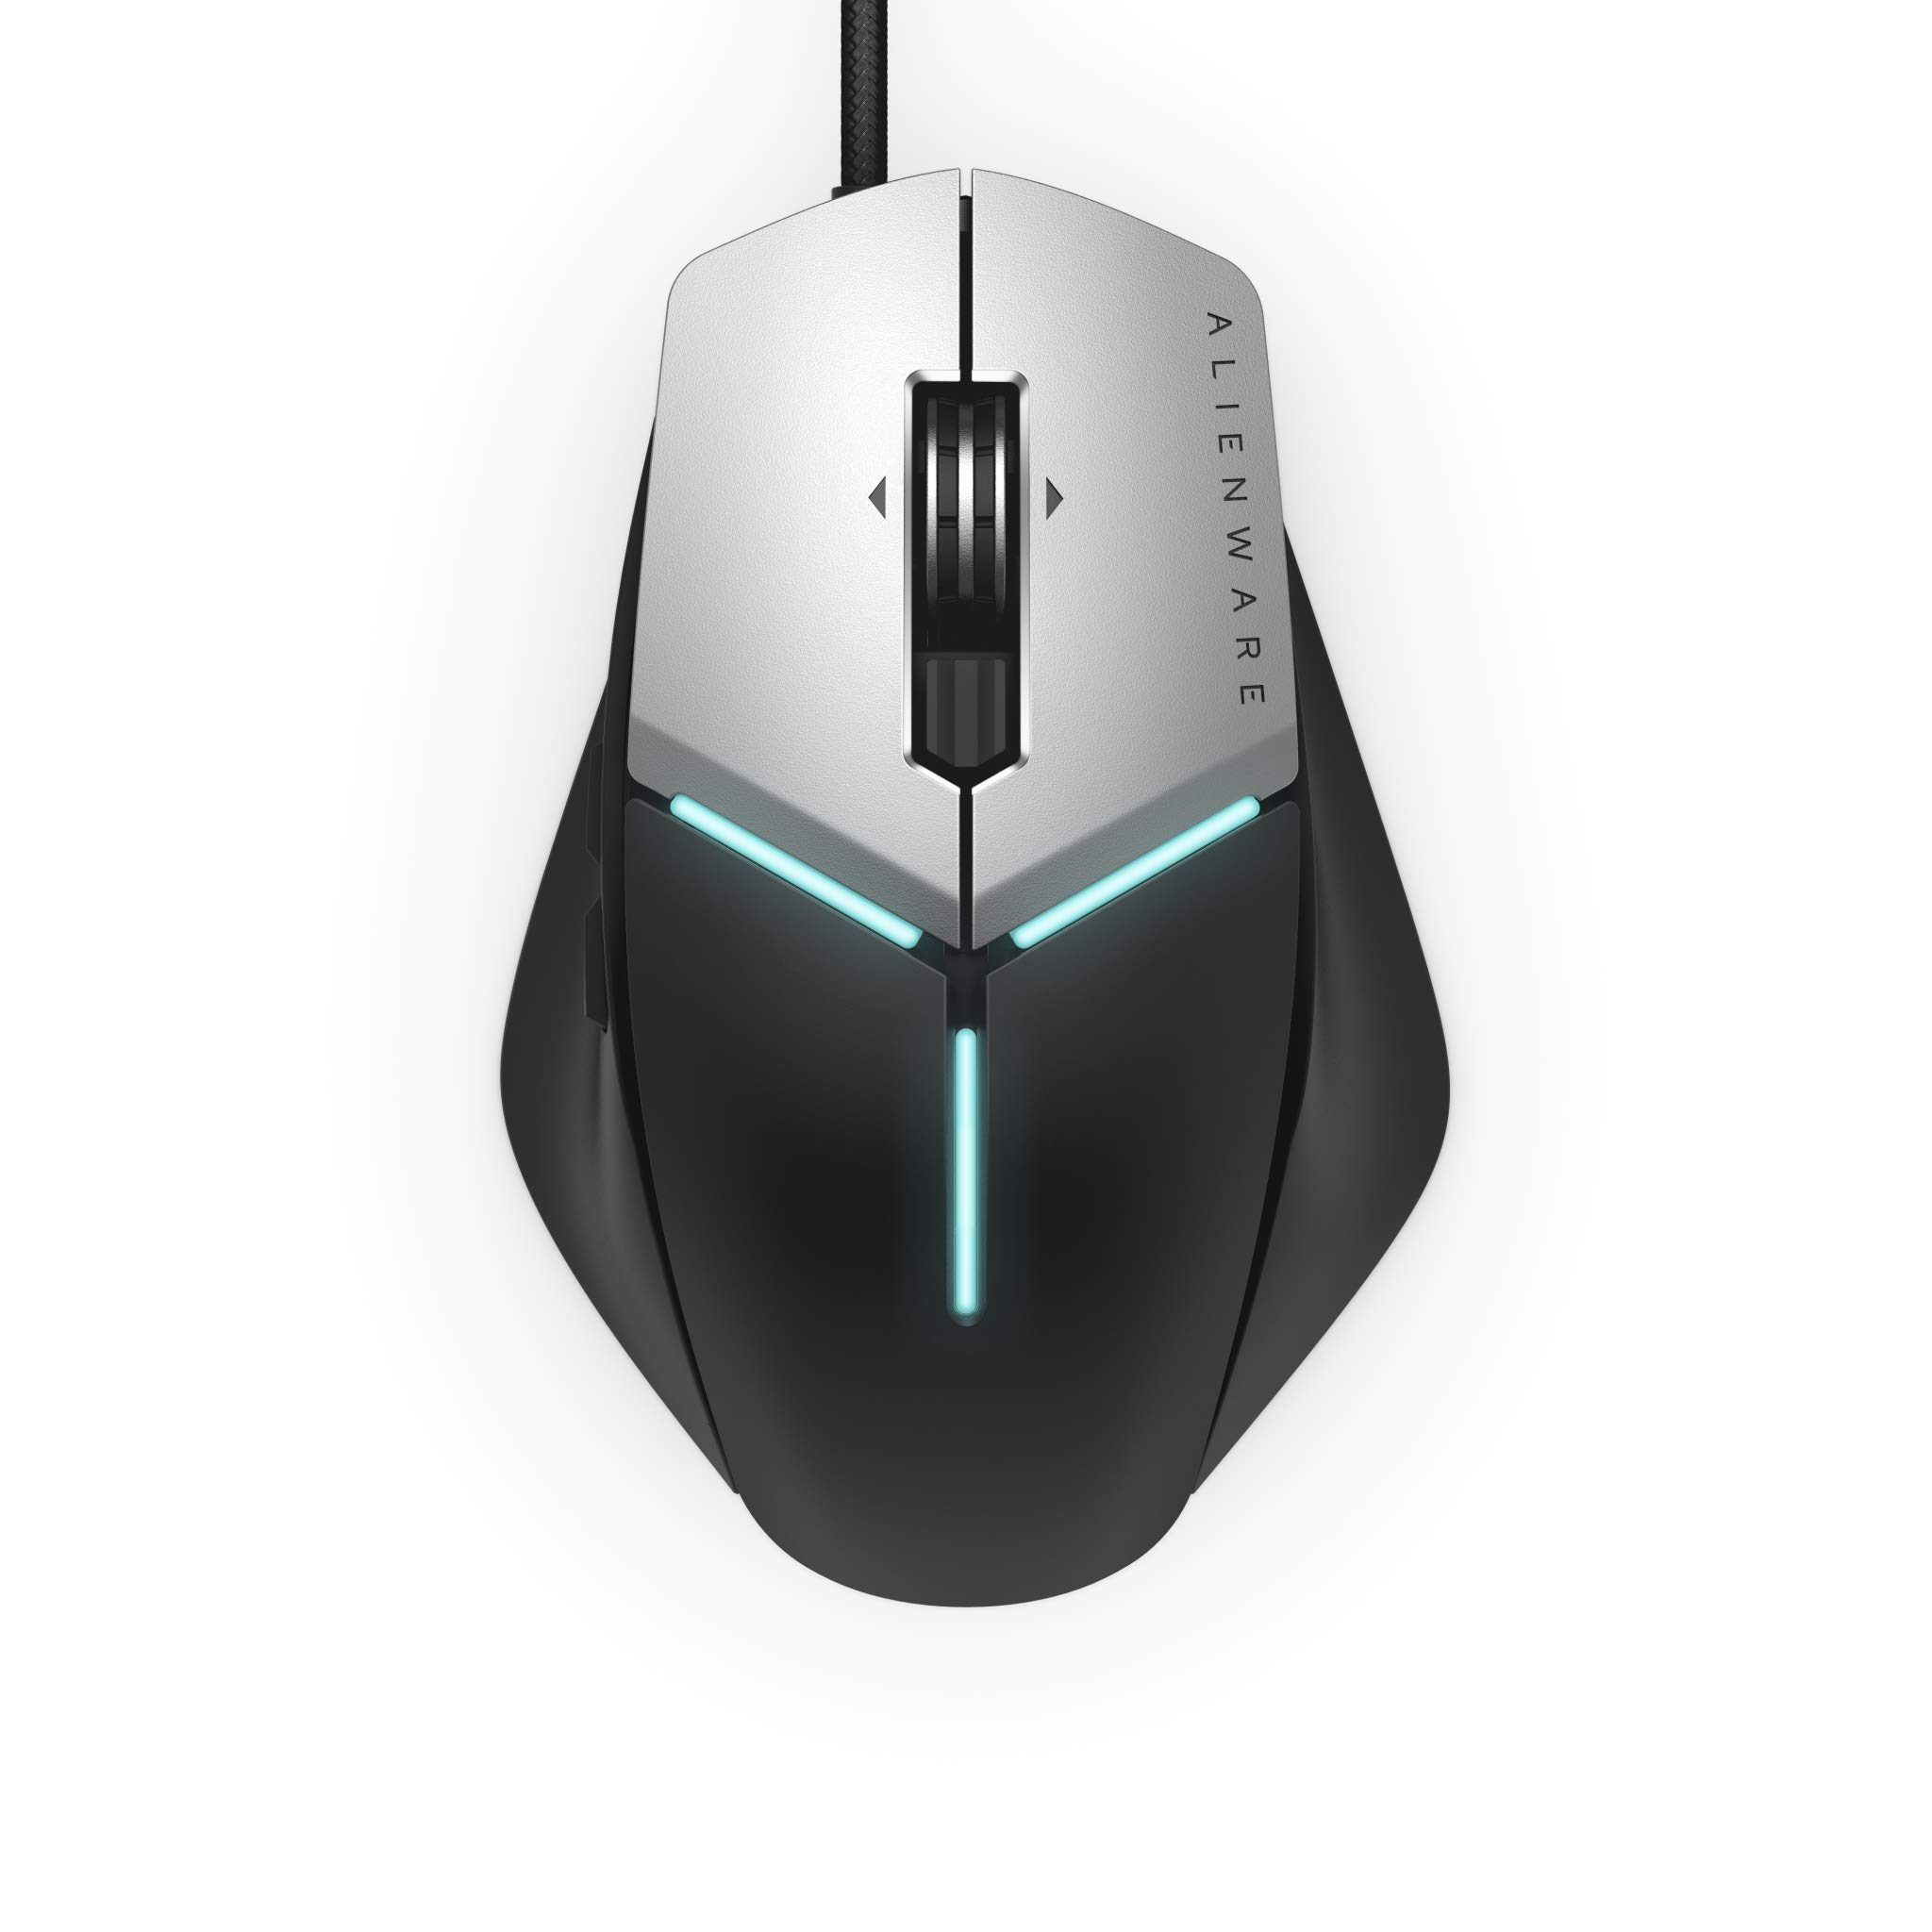 Mouse Gamer : Alienware Elite AW959 con 12000 DPI Pixart